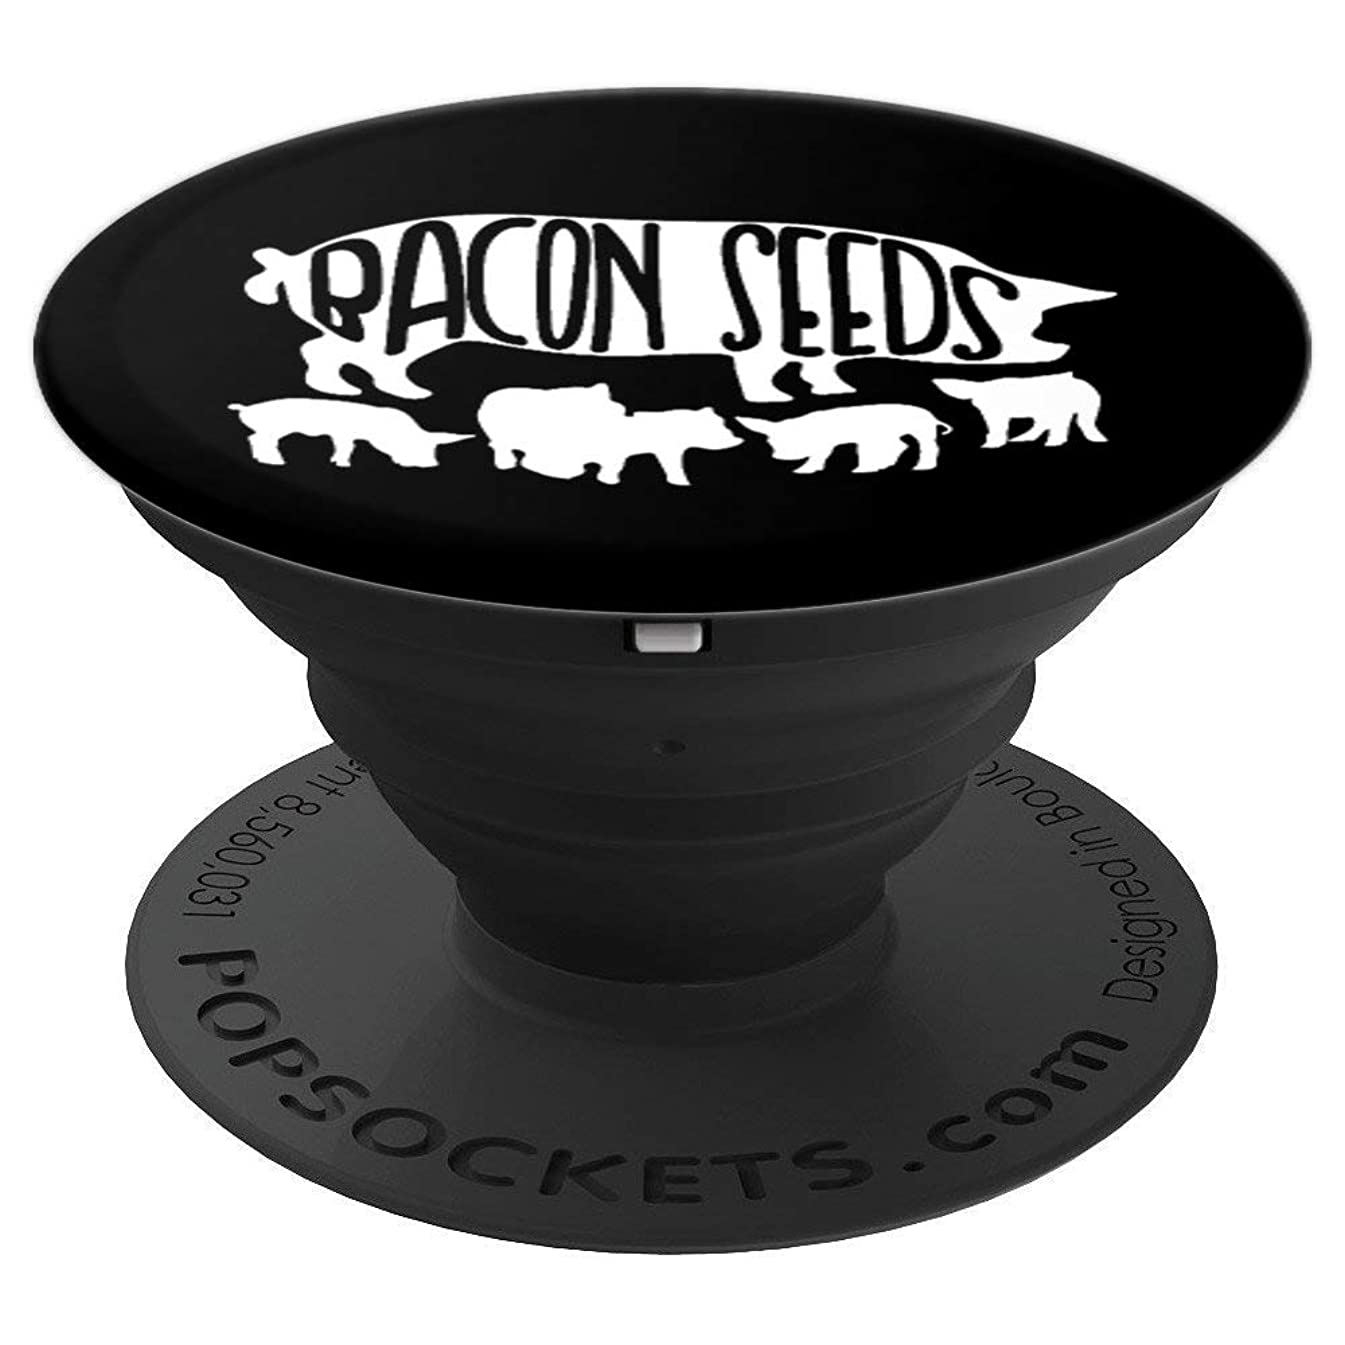 Bacon Seeds - Funny Bacon Lover Gift - PopSockets Grip and Stand for Phones and Tablets